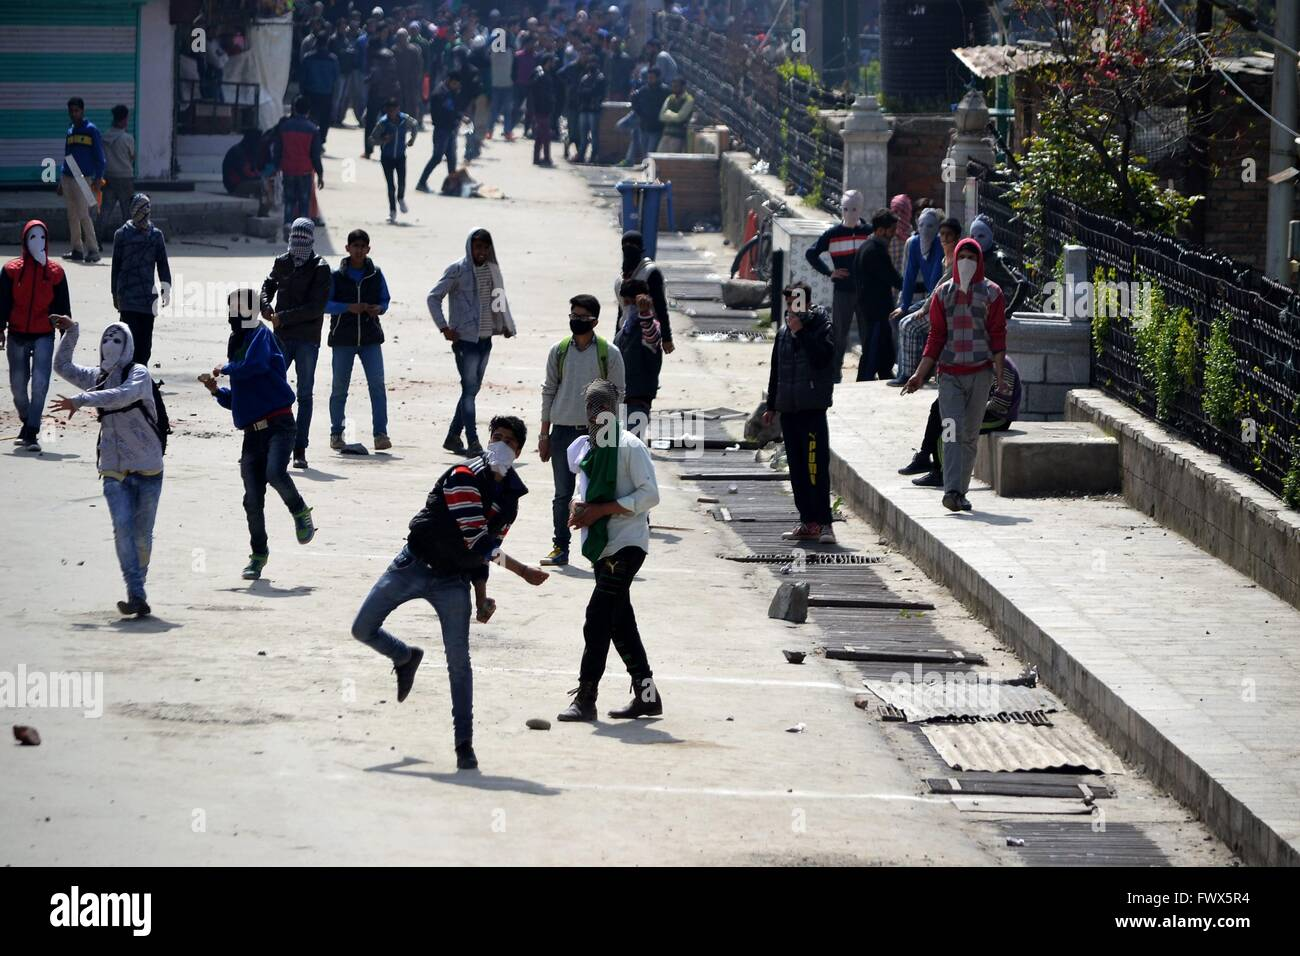 Srinagar, Kashmir. 8th April, 2016. Kashmiri Muslim protestors clash with Indian police during a protest in Srinagar, - Stock Image